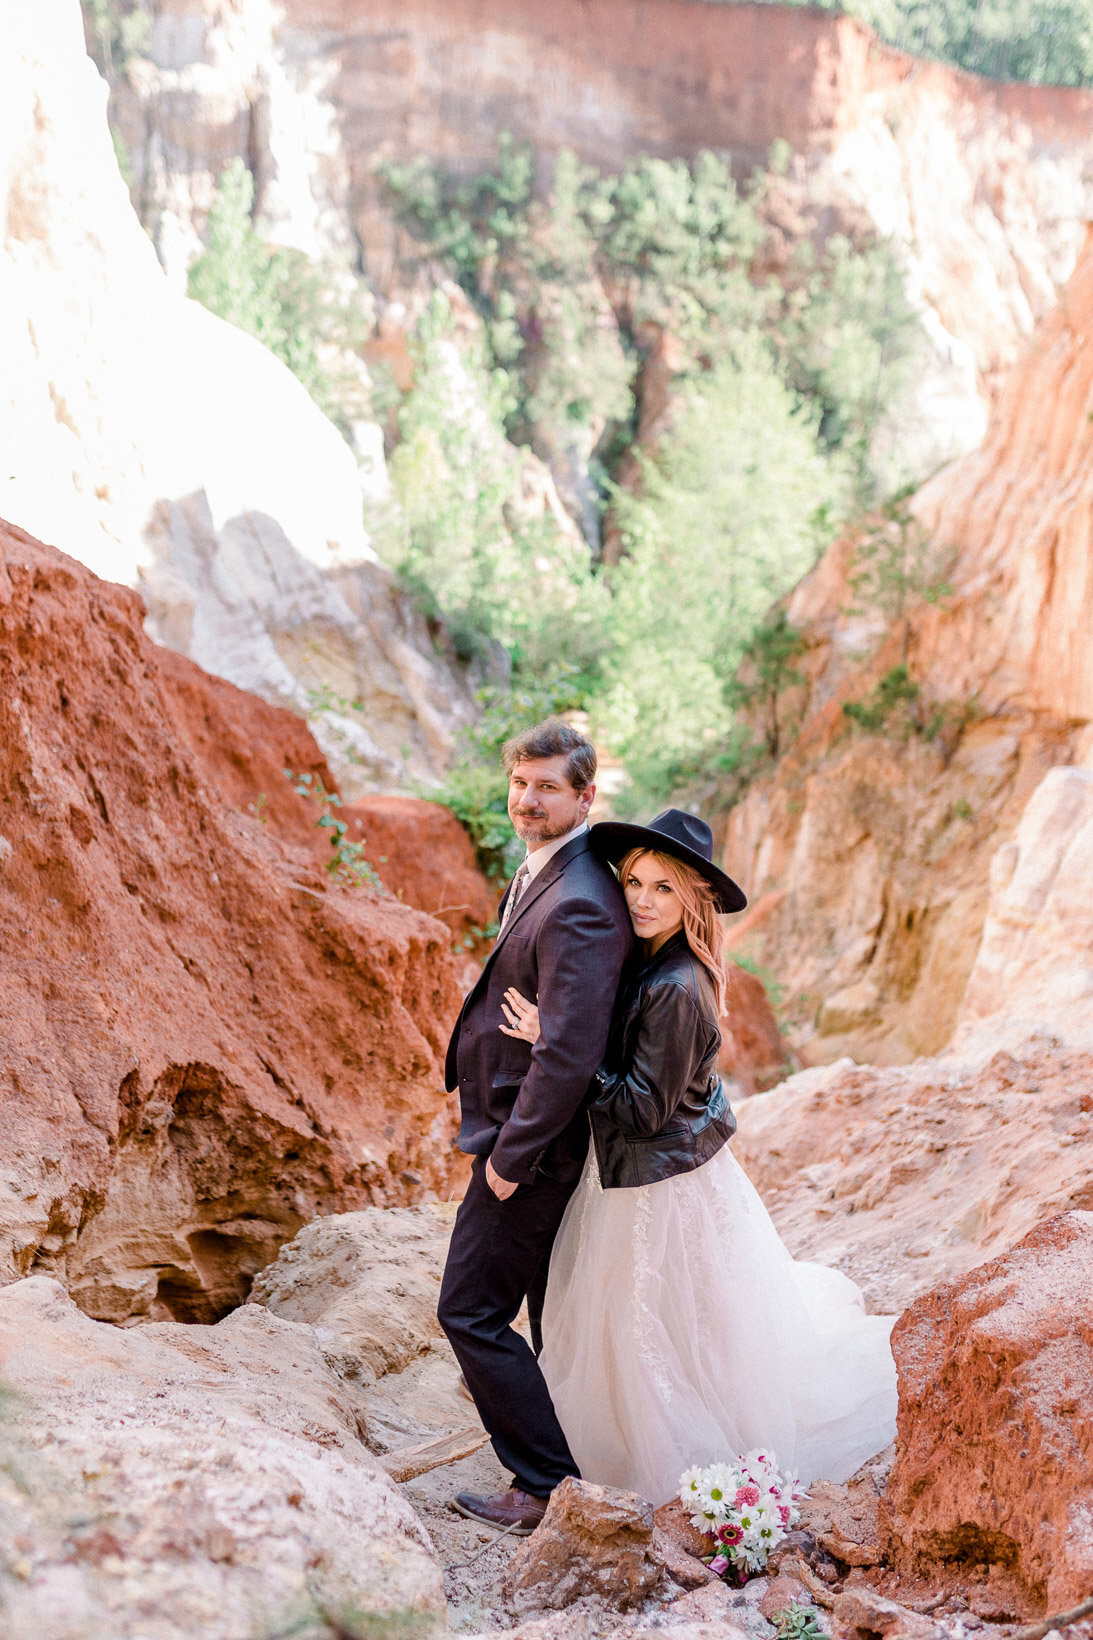 providence-canyon-wedding-elopement-adventure-hiking-georgia-arizona-18